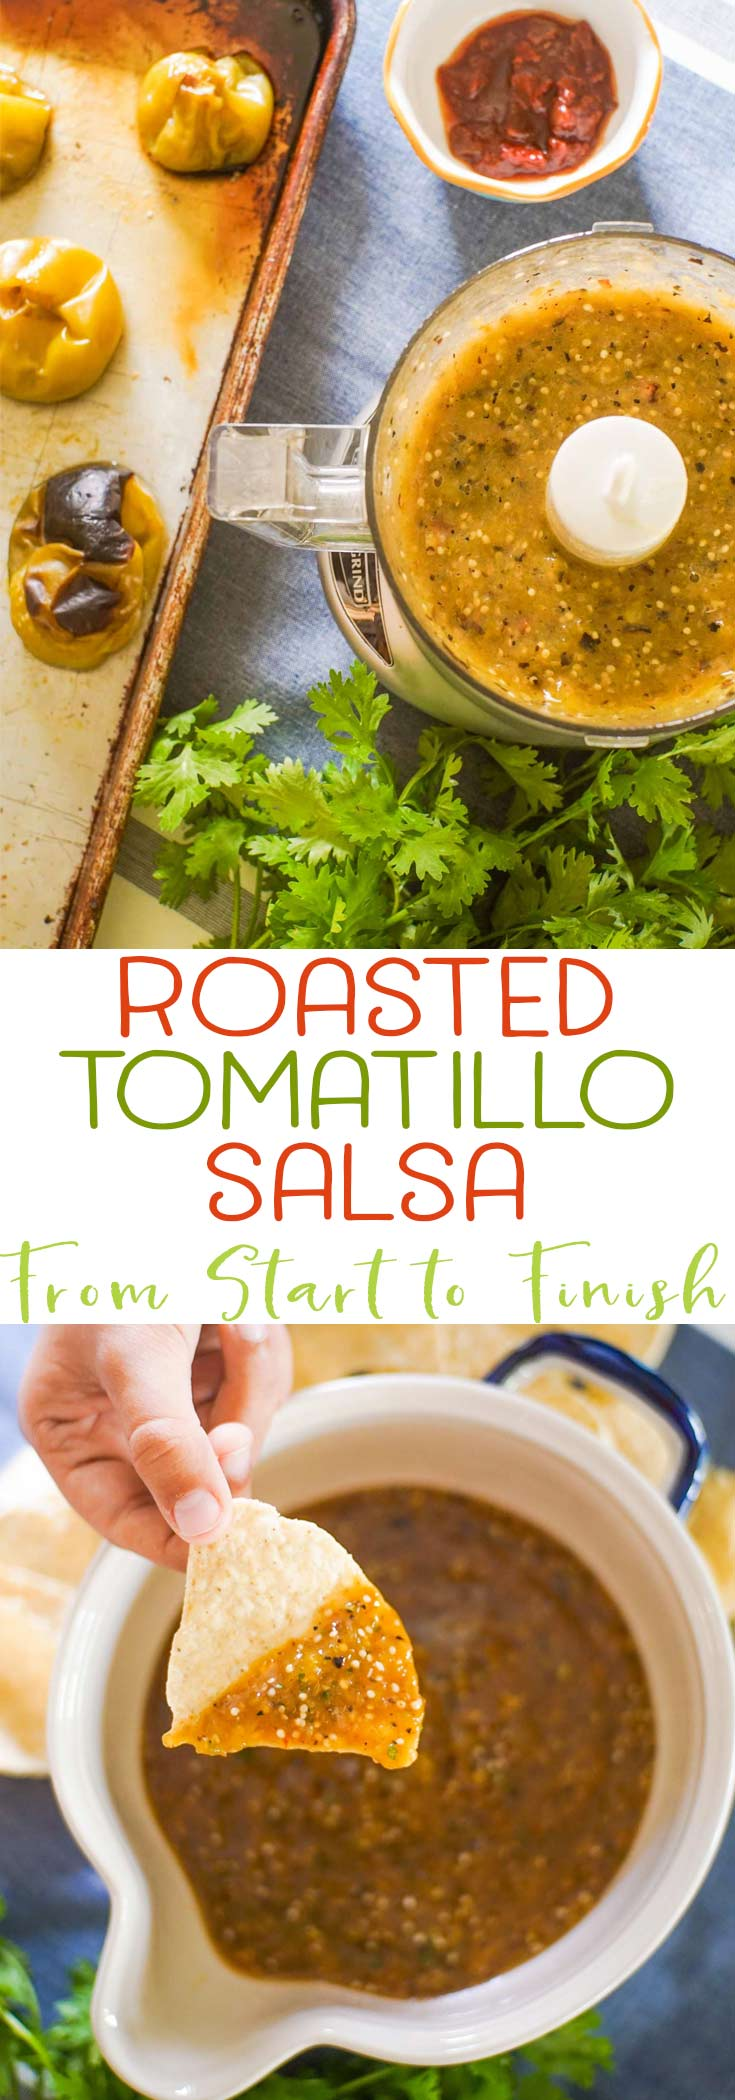 Learn how to make easy homemade tomatillo salsa at home. Tips and tricks to pick the right ingredients and make restaurant quality salsa at home! via @mrsmajorhoff